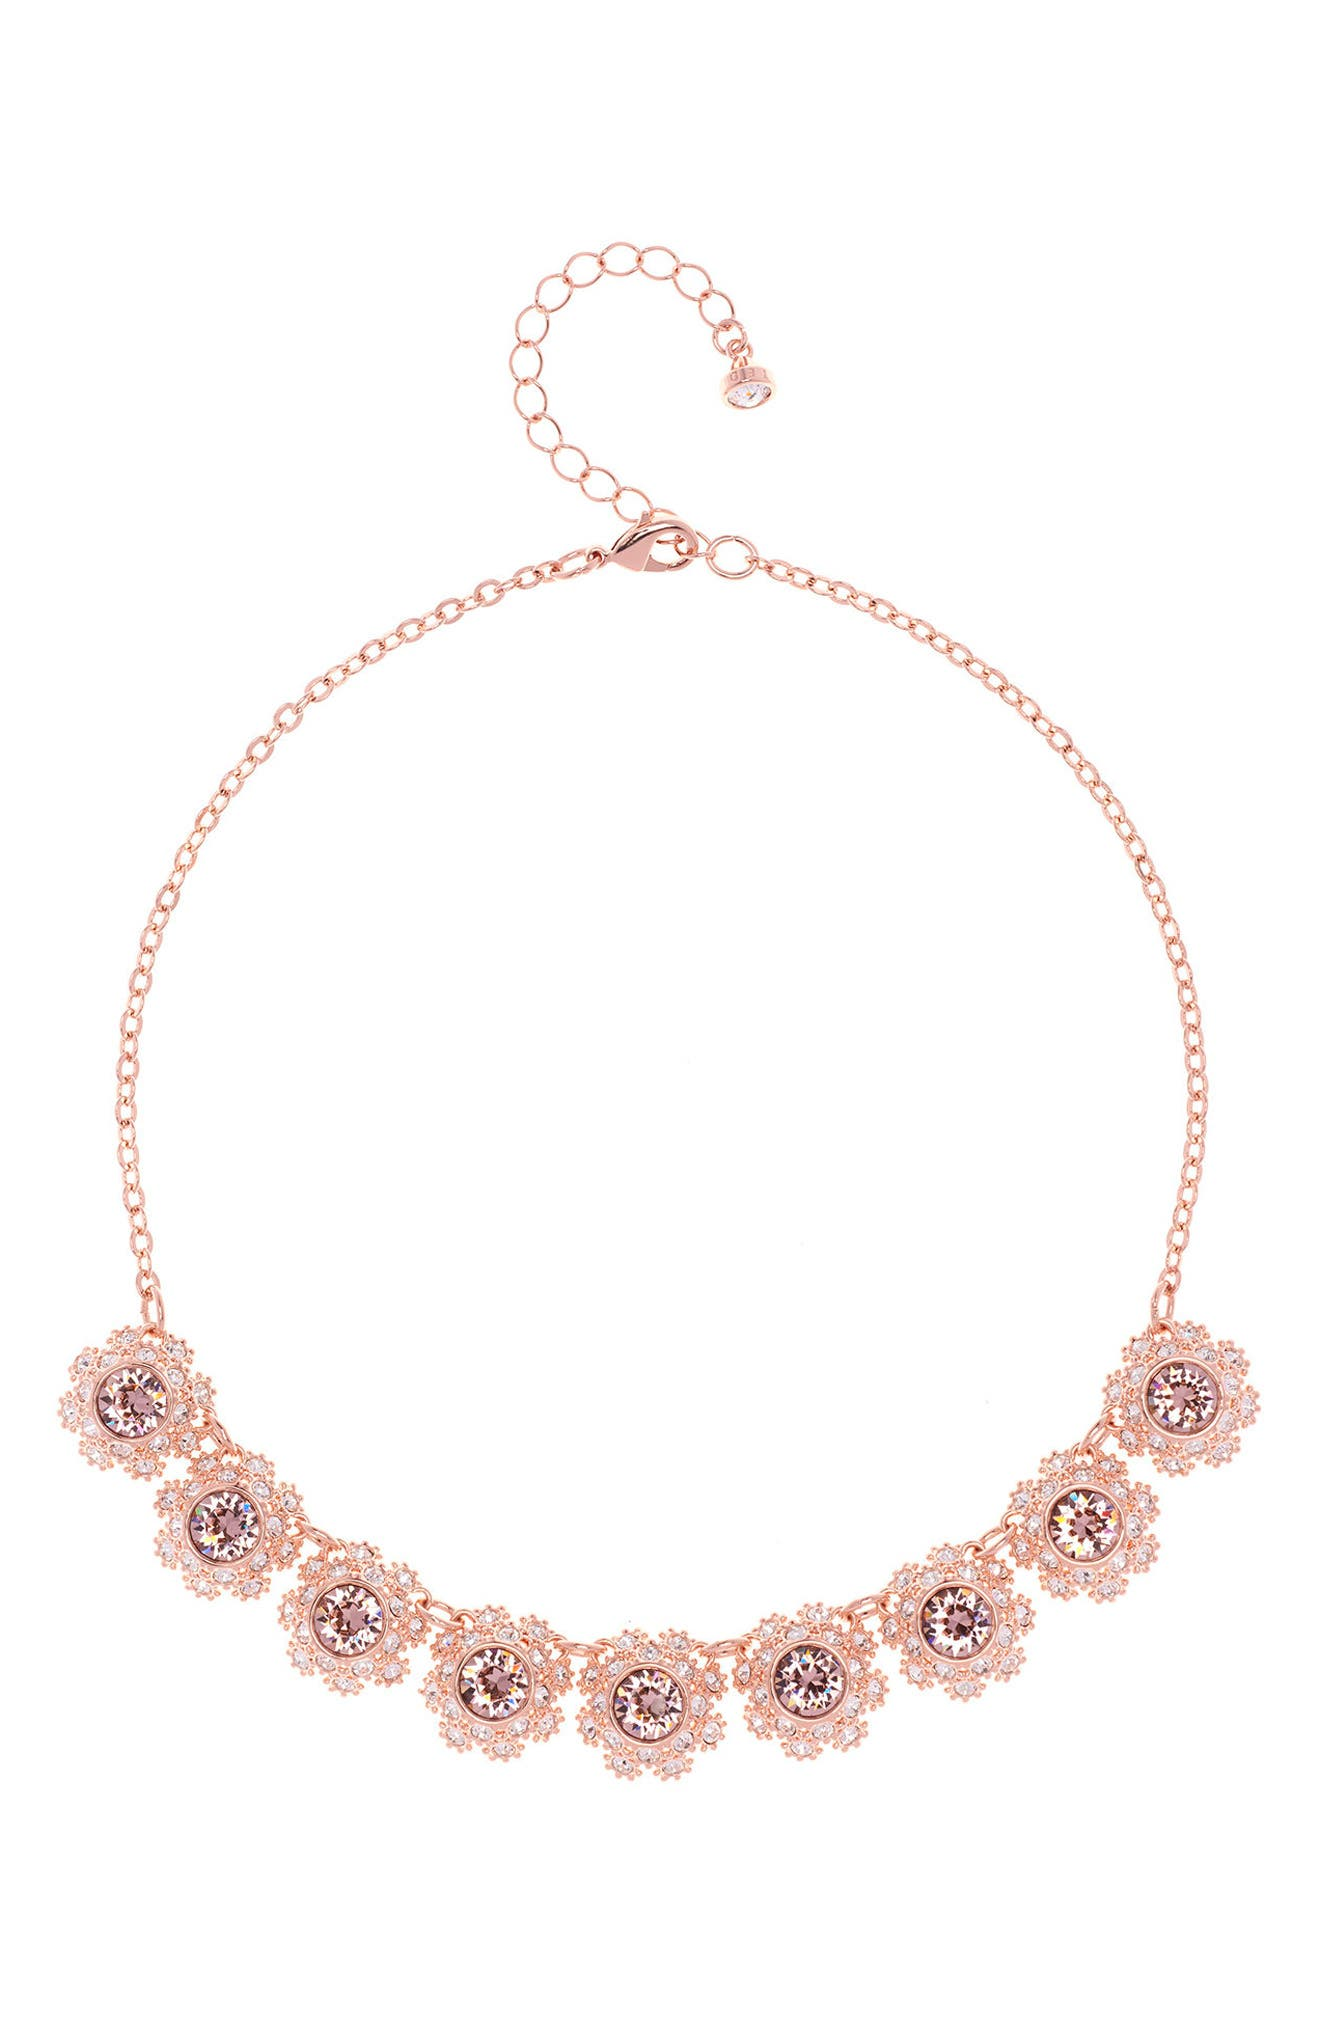 Crystal Daisy Lace Collar Necklace,                             Main thumbnail 1, color,                             660